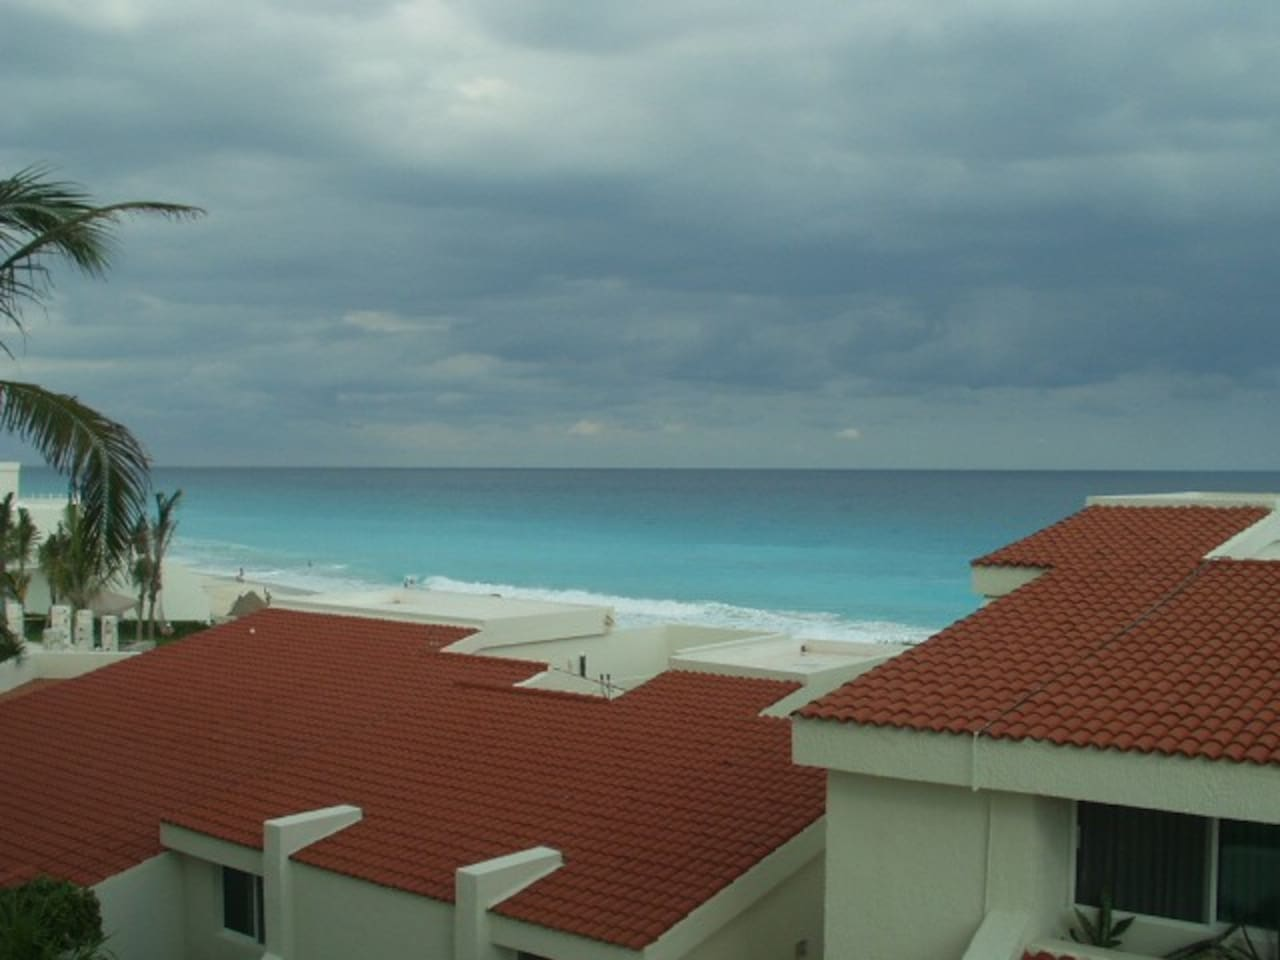 VERY NICE VIEW FROM THE CONDO